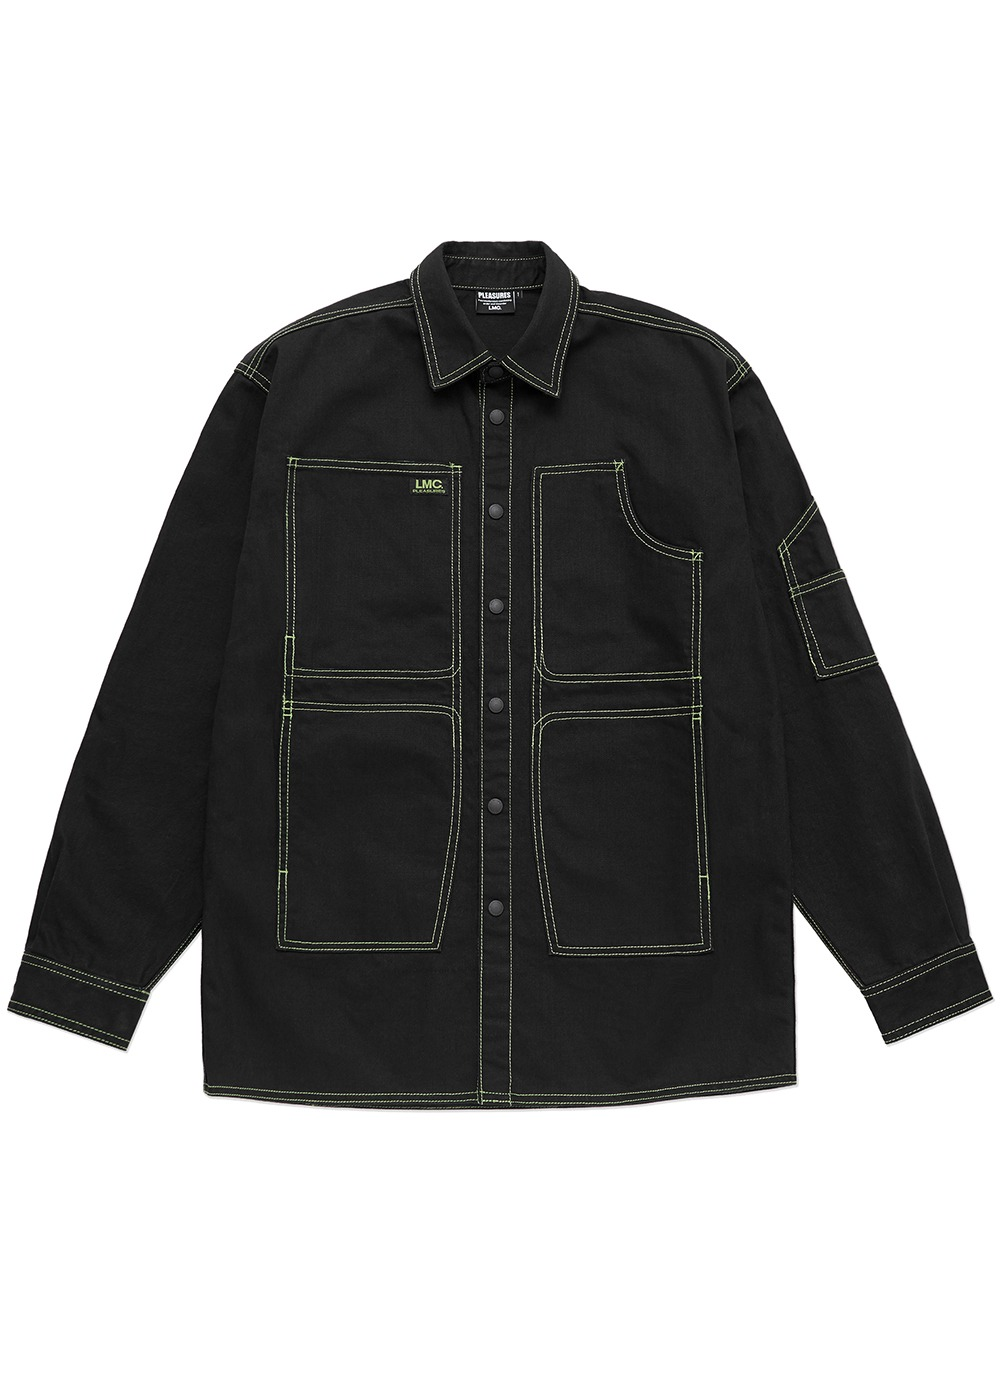 LMC X PLEASURES CRUSH DENIM SHIRT JACKET black